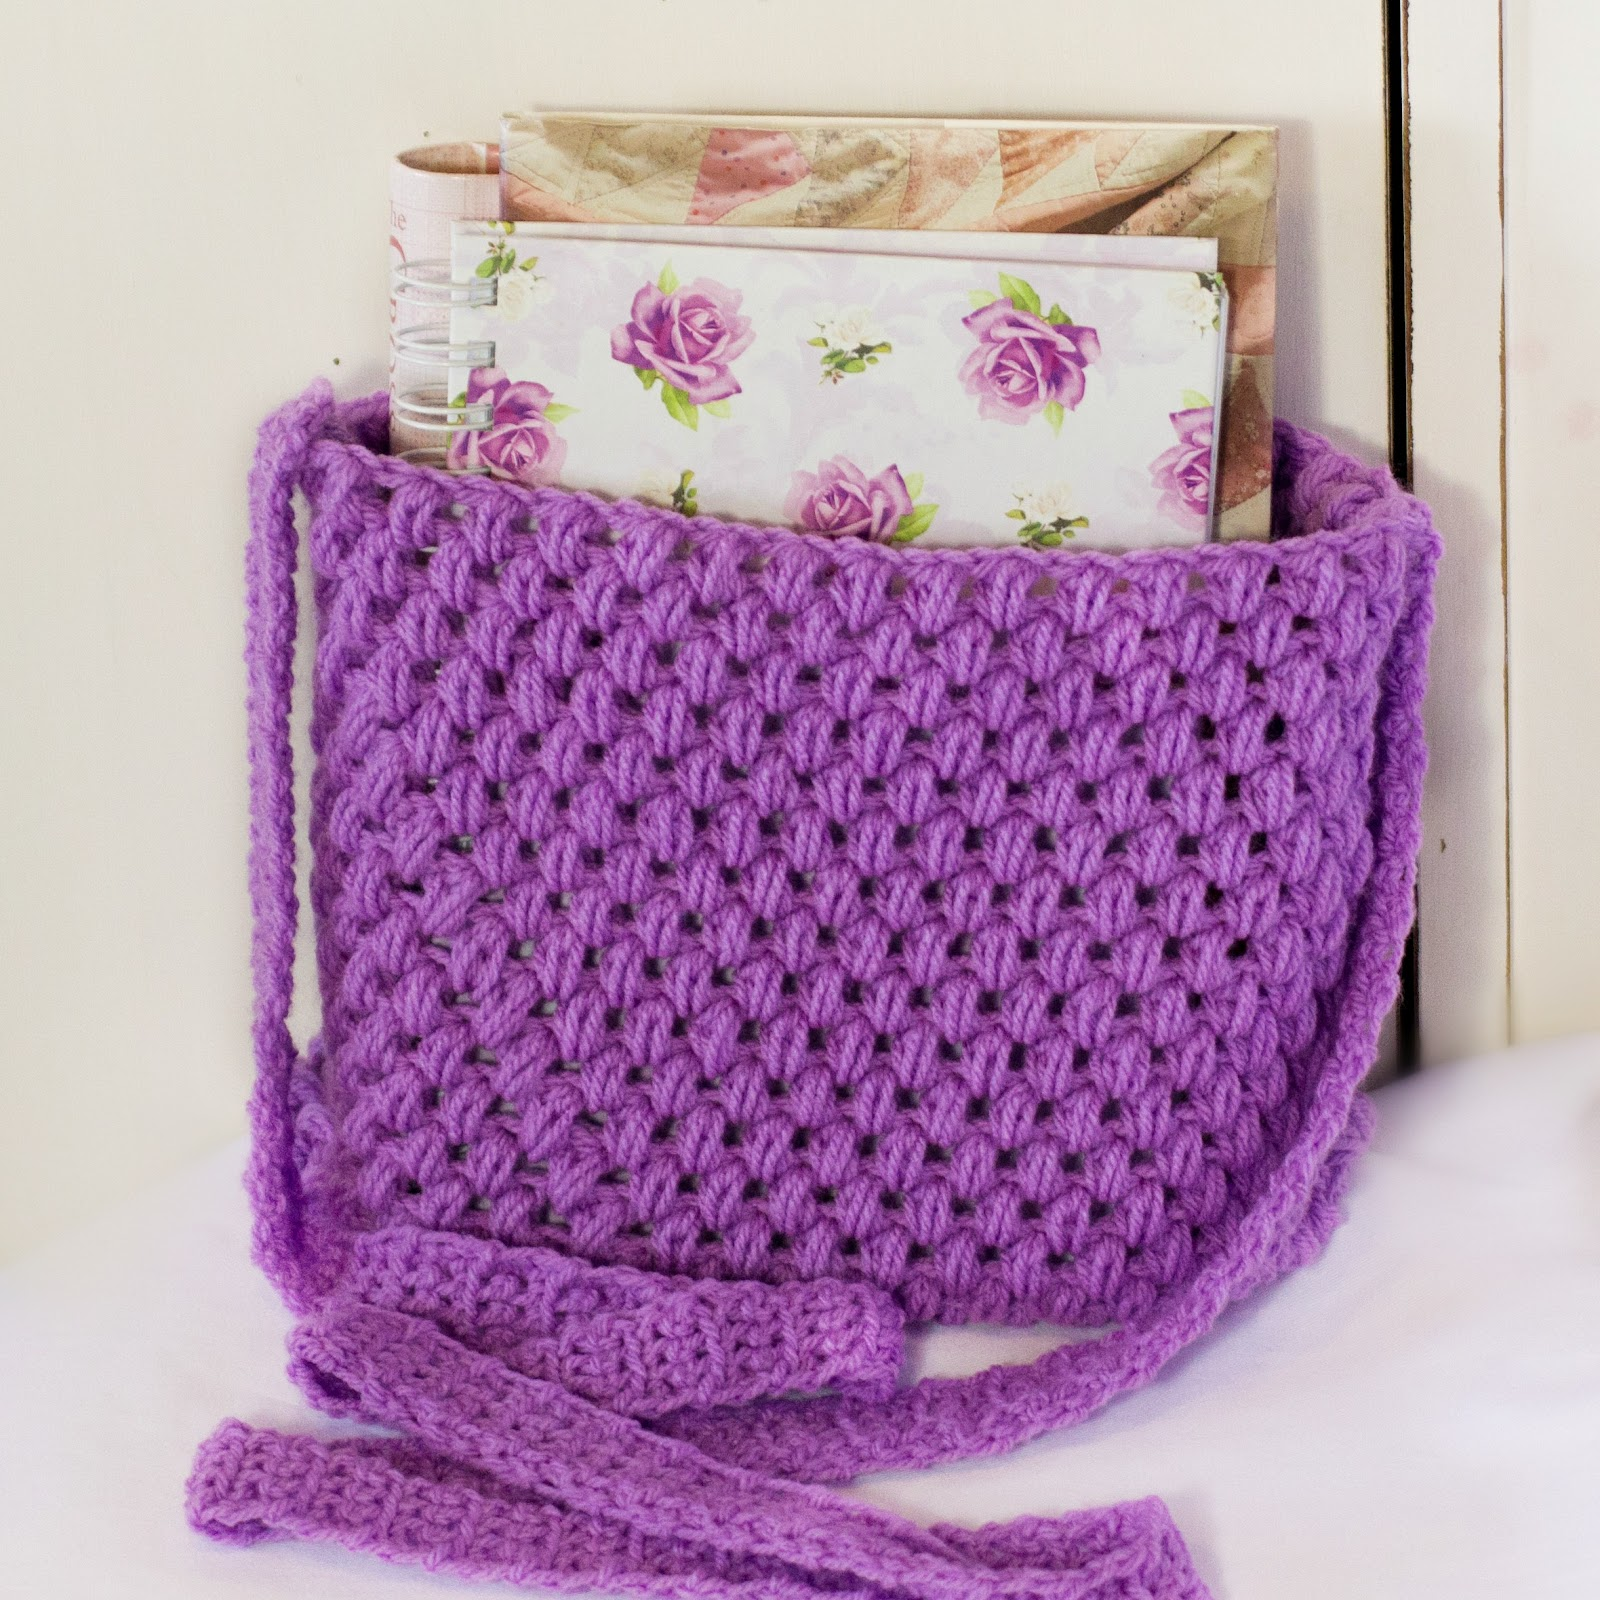 ... Craft, Crochet, Create: Out and About ~ Easy Tote Bag Crochet Pattern